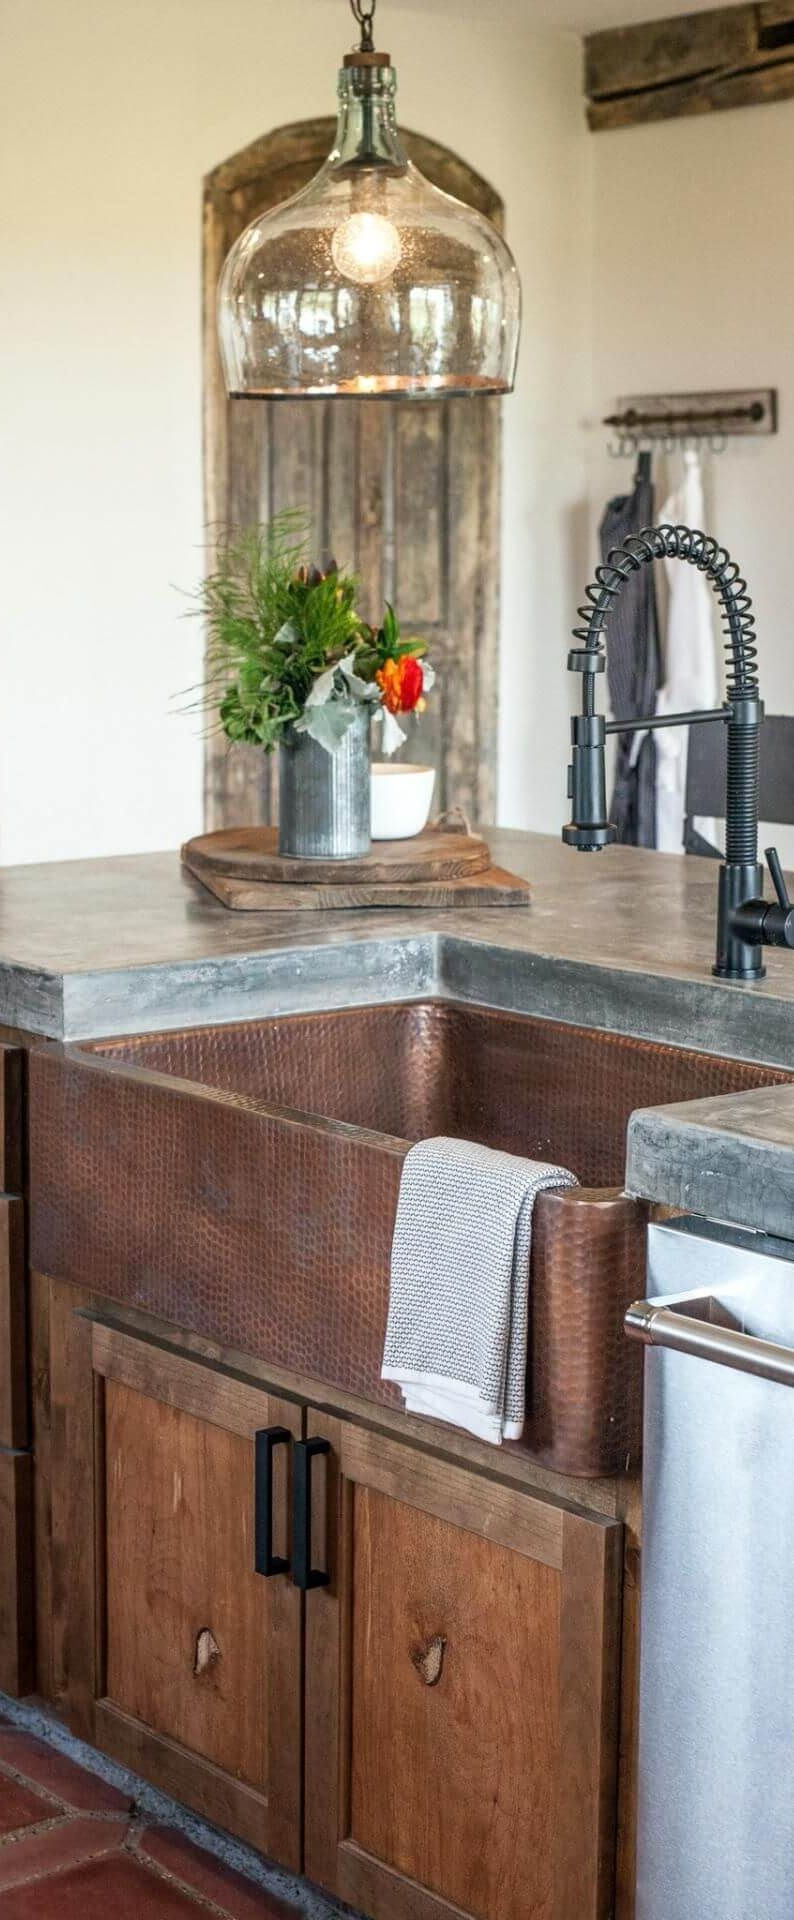 Get dozens of ideas for adding a farmhouse sink to your